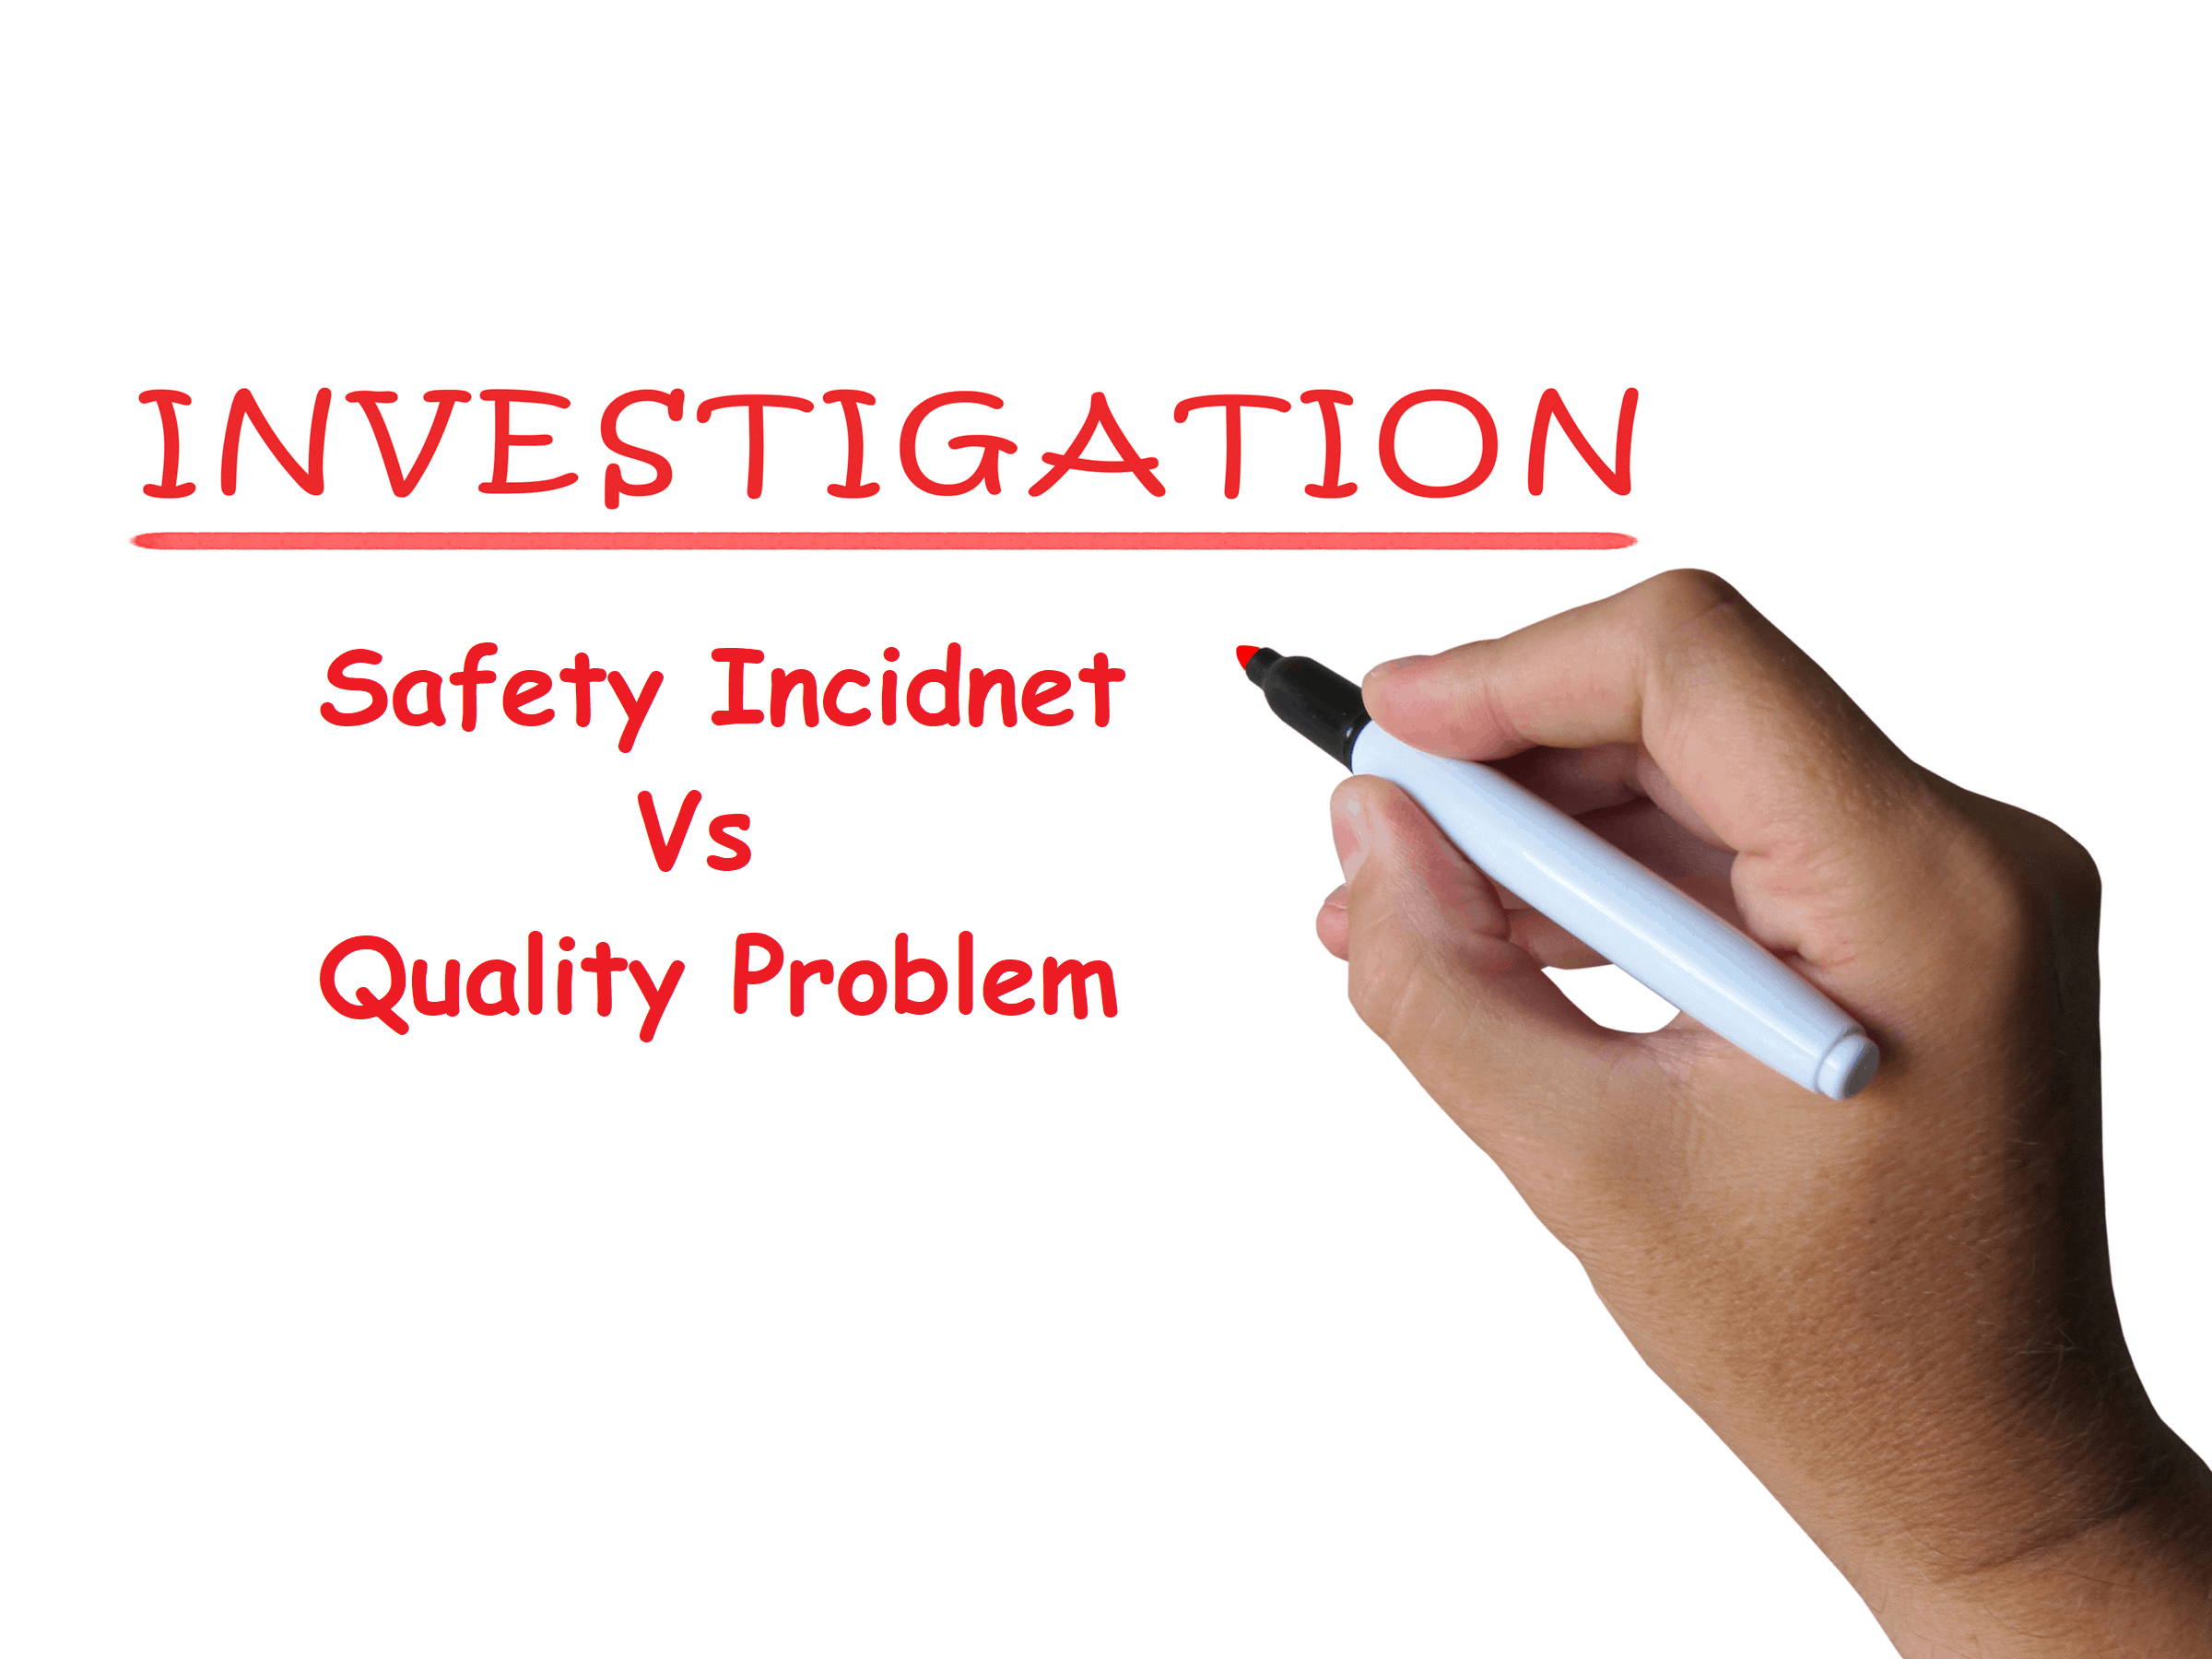 Investigation safety vs quality